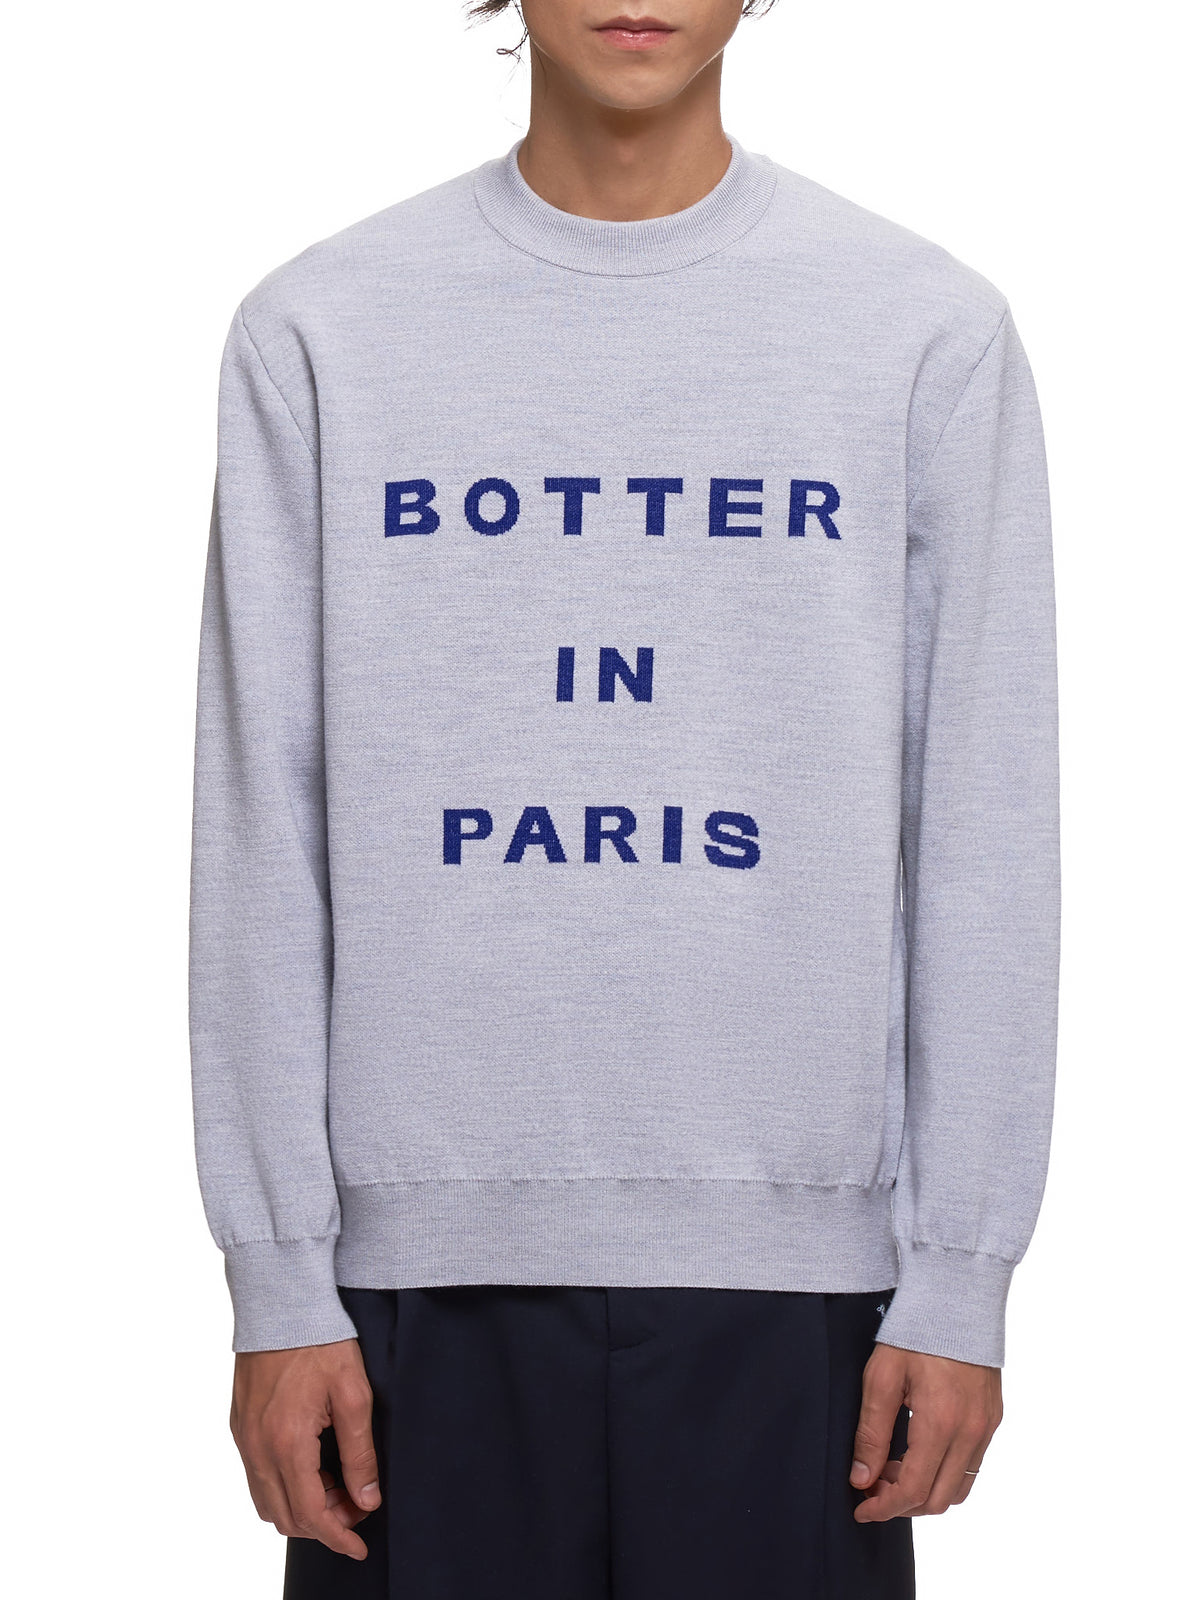 Botter Sweater - Hlorenzo Front